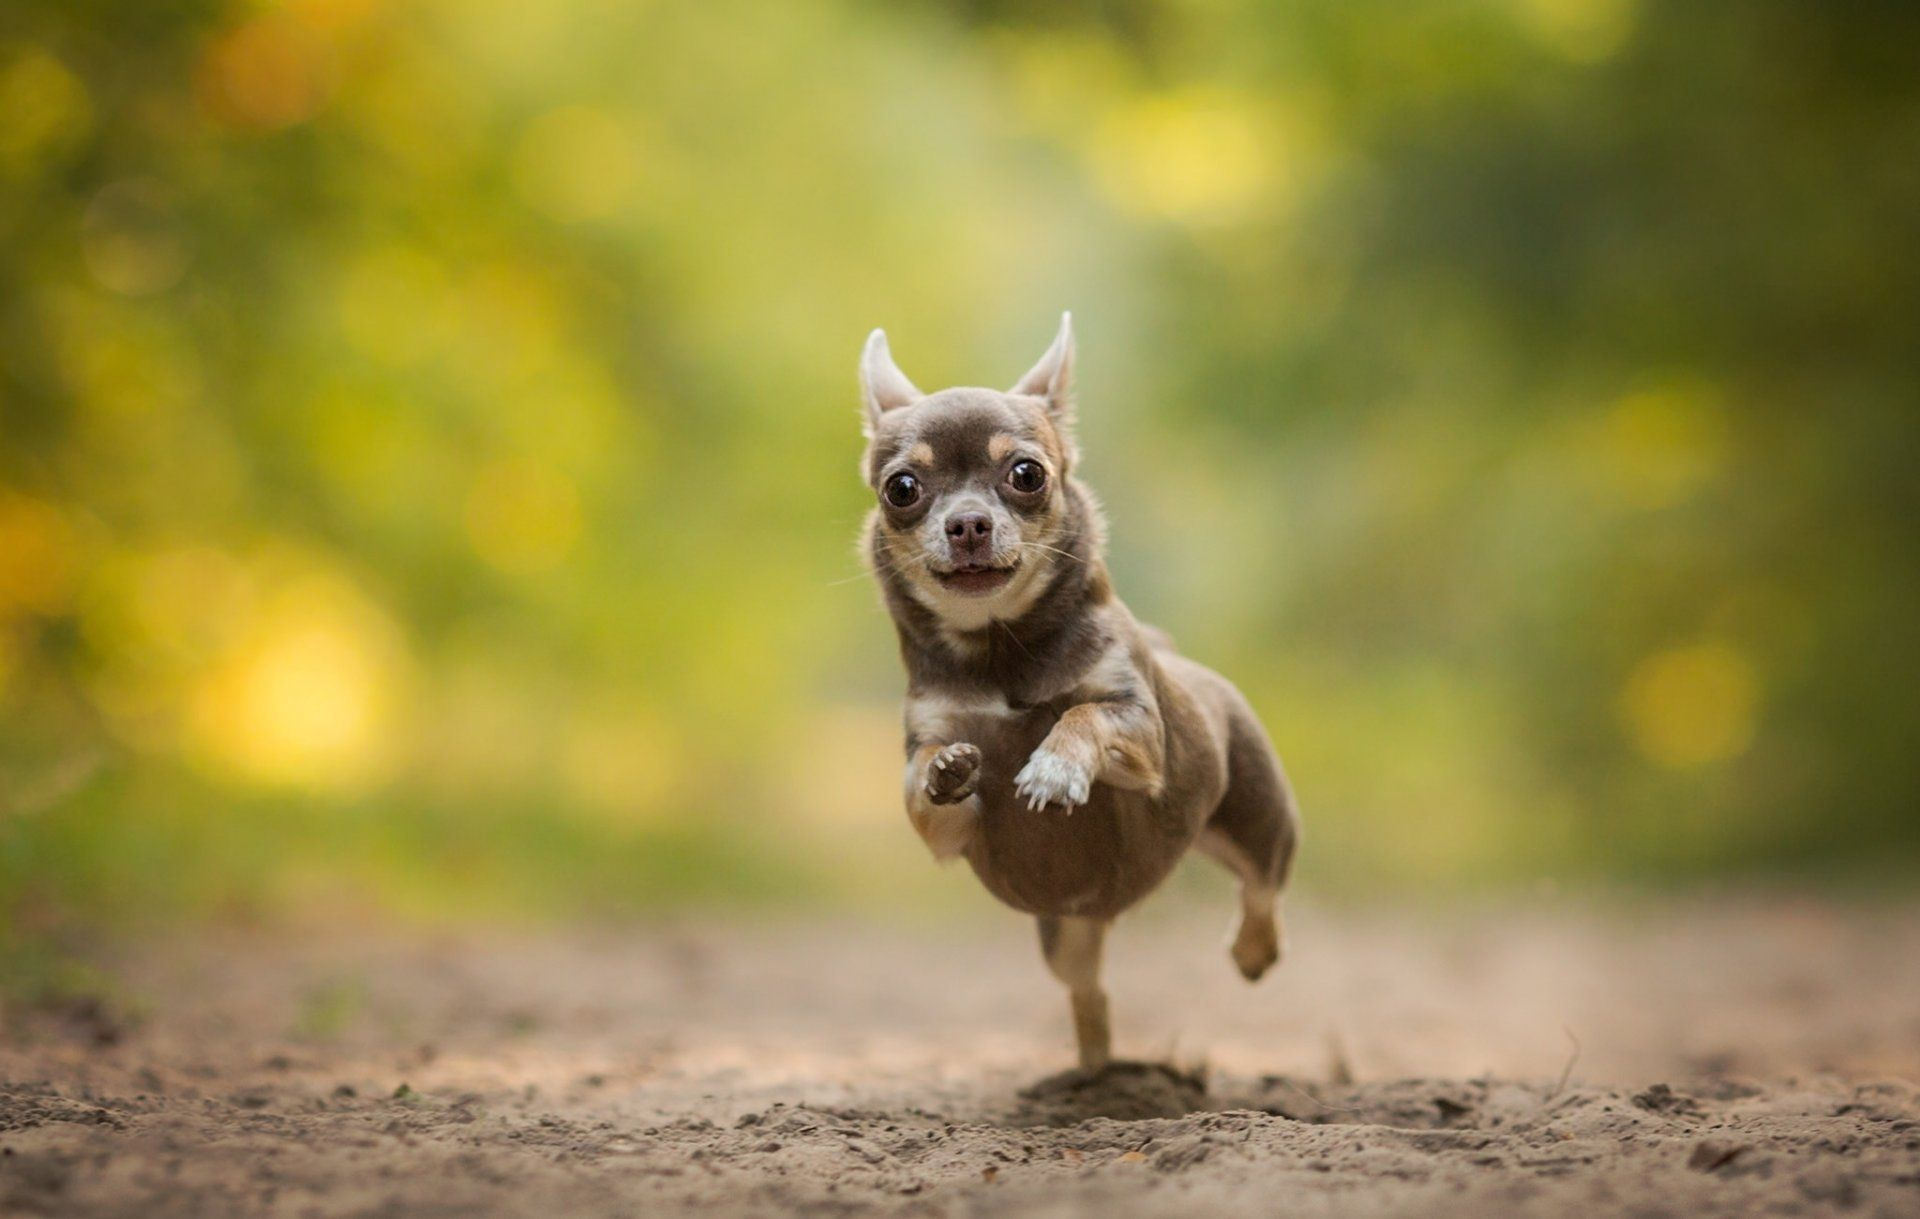 Free Chihuahua Wallpaper For Desktop Chihuahua Animals Chihuahua Dogs